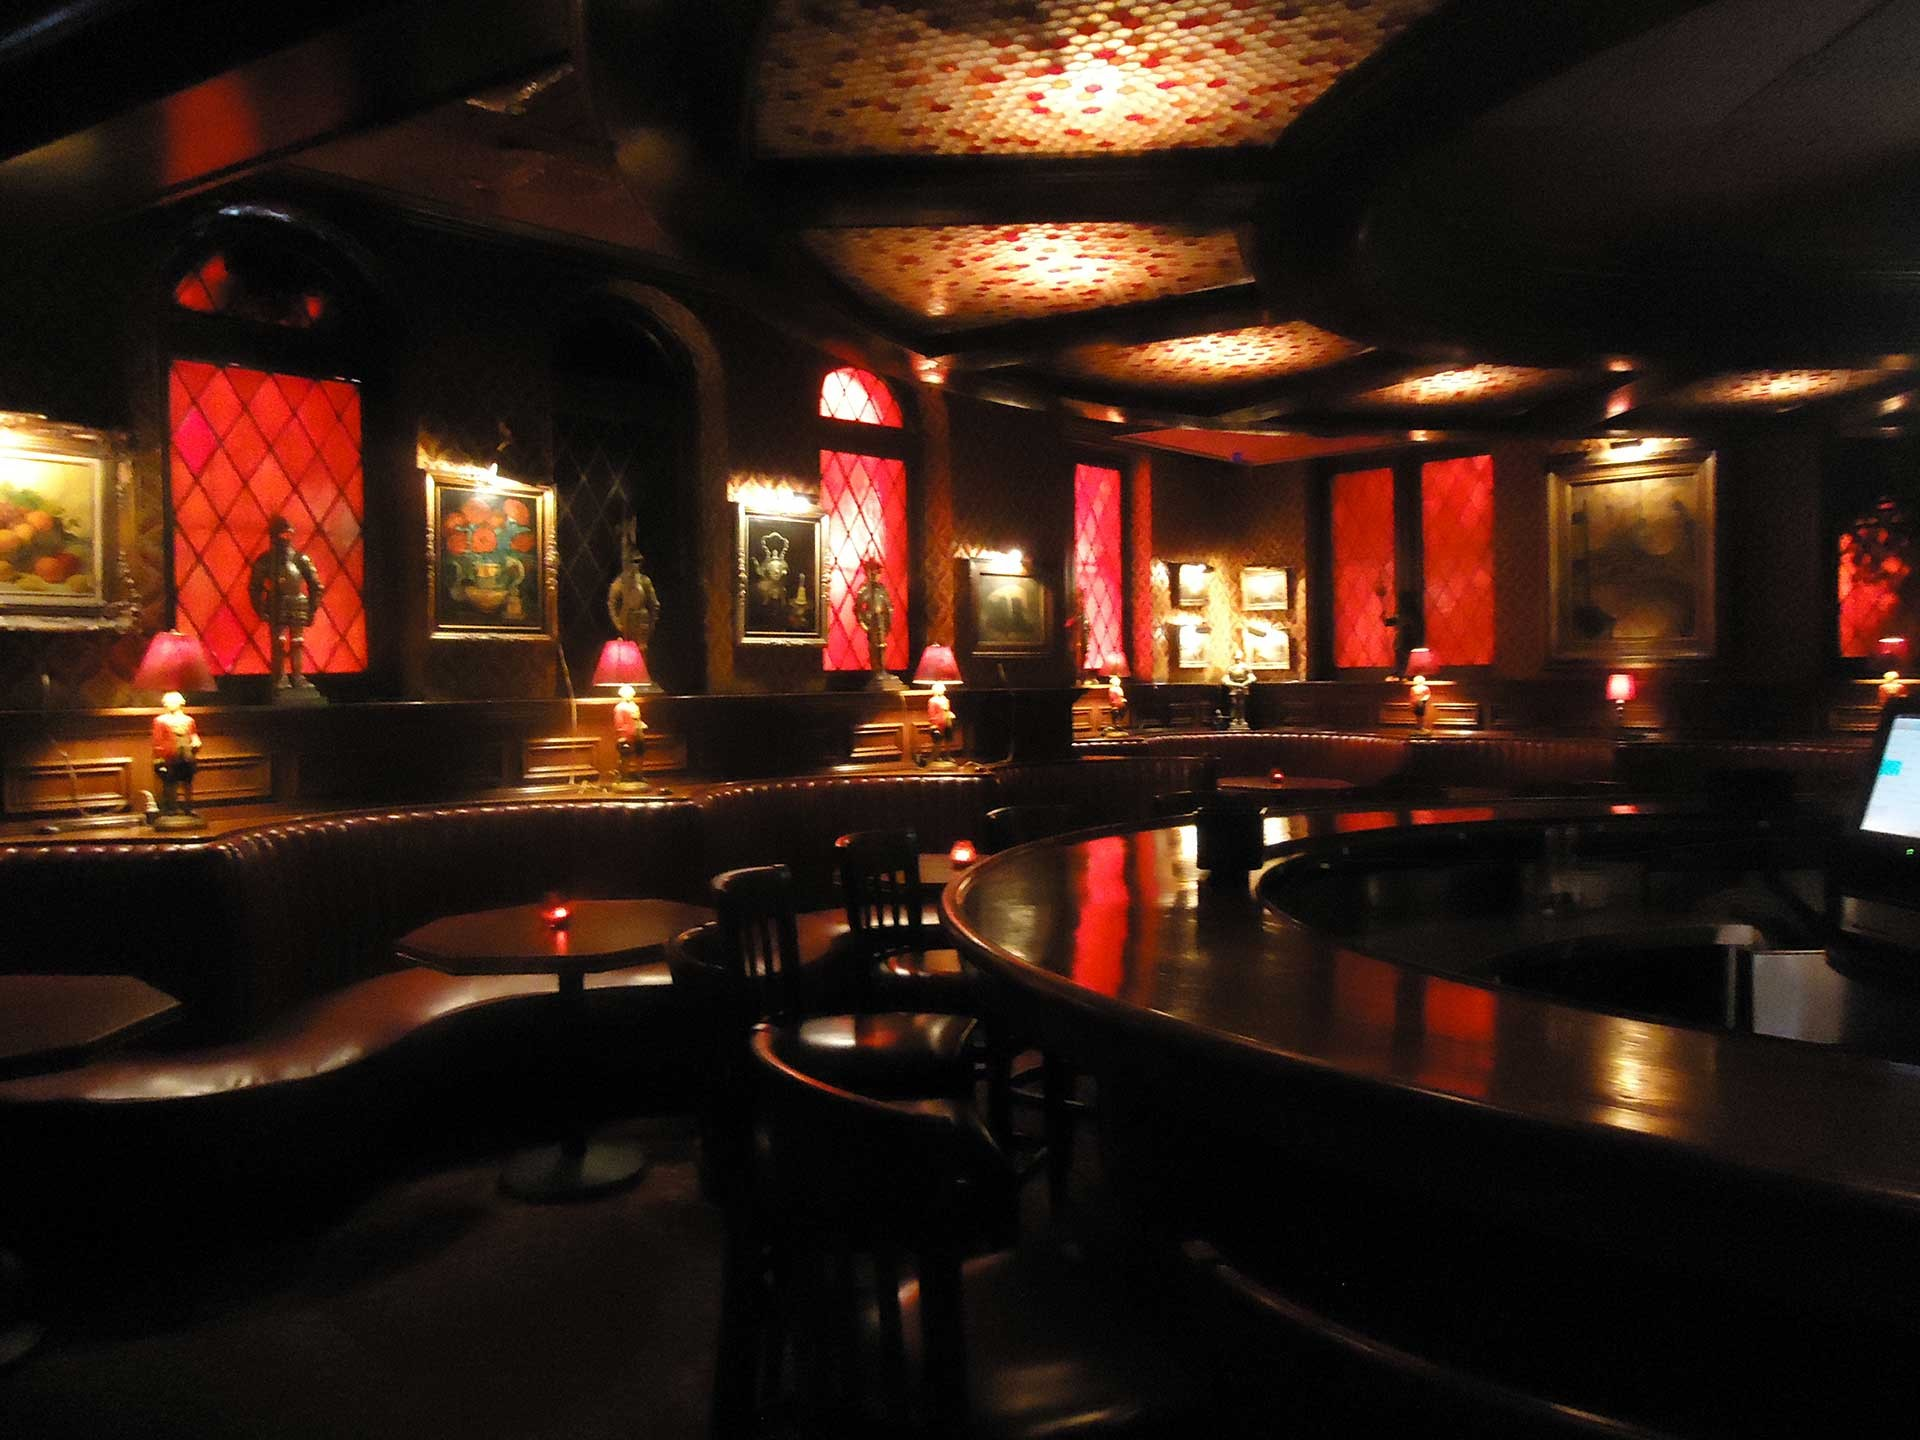 Pub Wallpaper 57 Images: Bar Background ·① Download Free Beautiful Wallpapers For